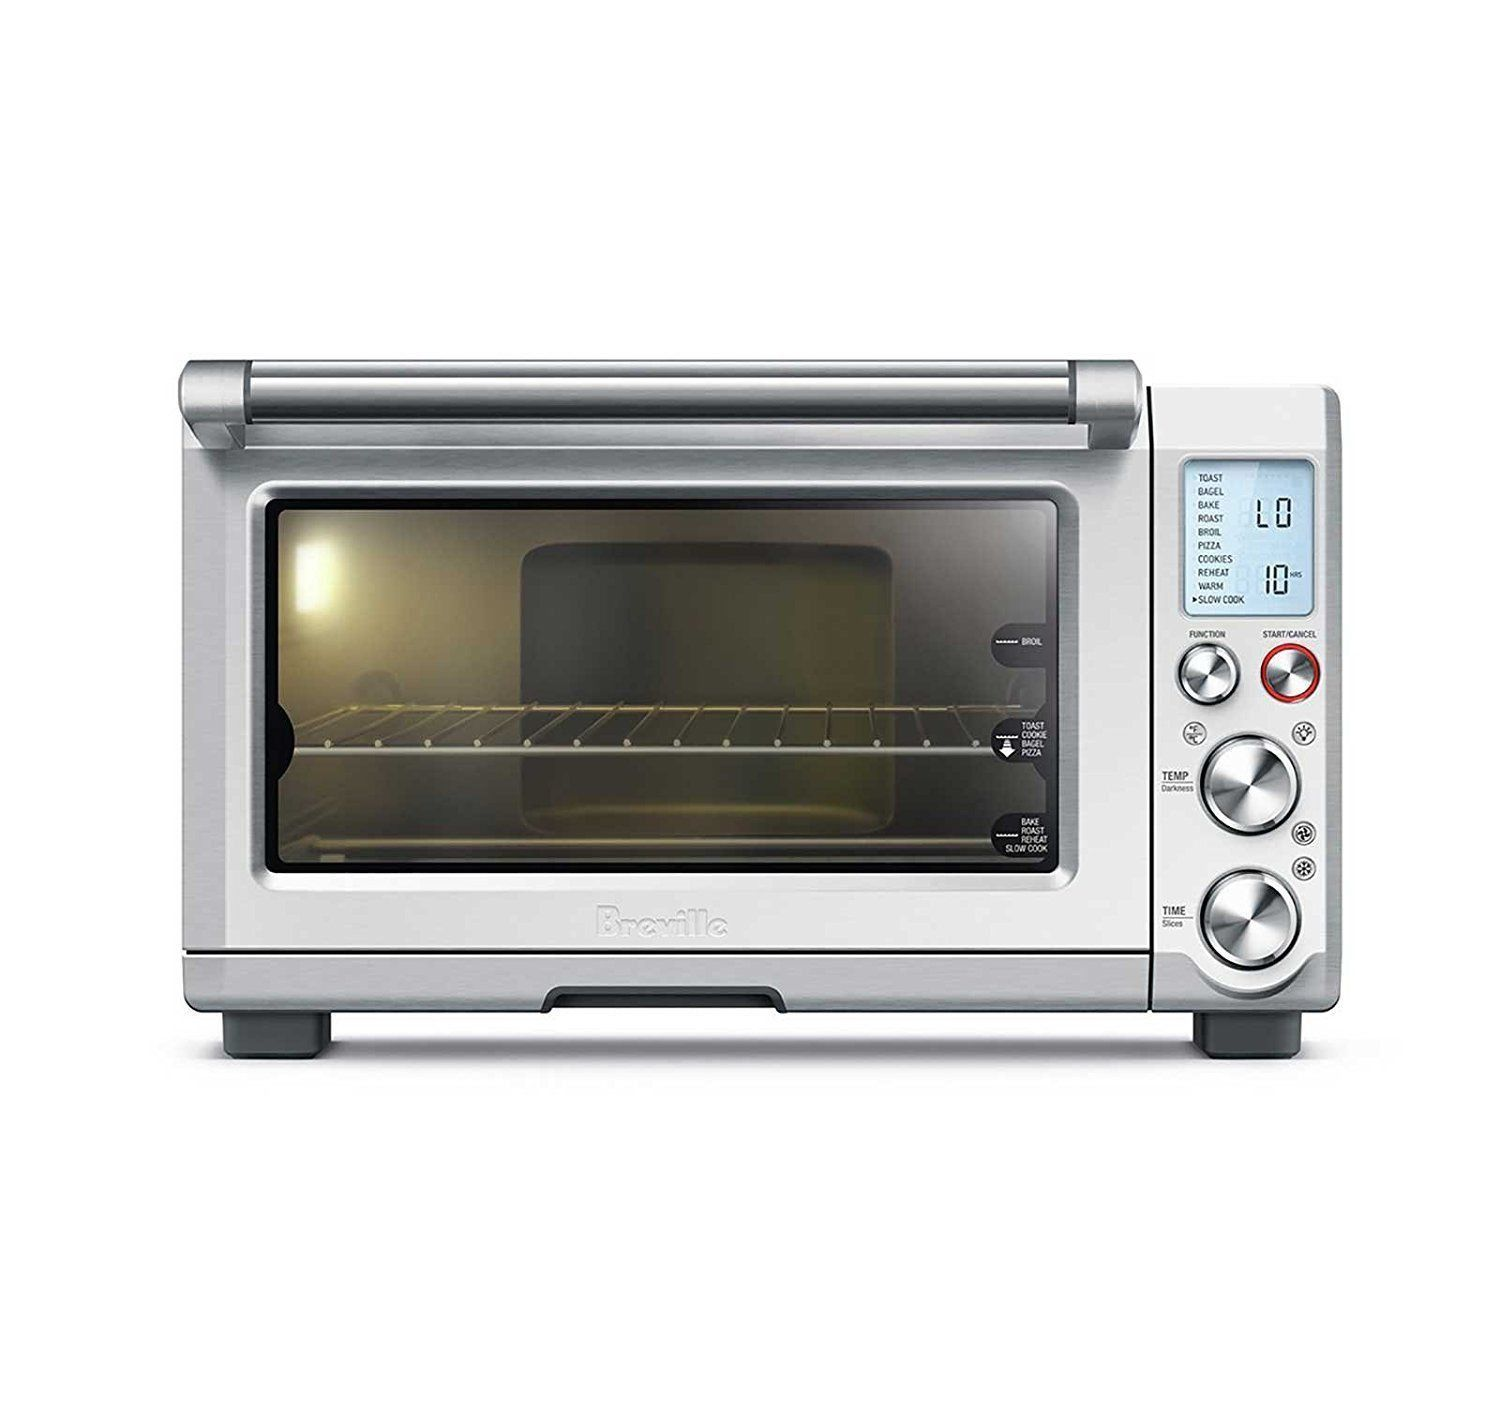 Breville Bov845 Toaster Oven The Smart Oven Pro Countertop Oven